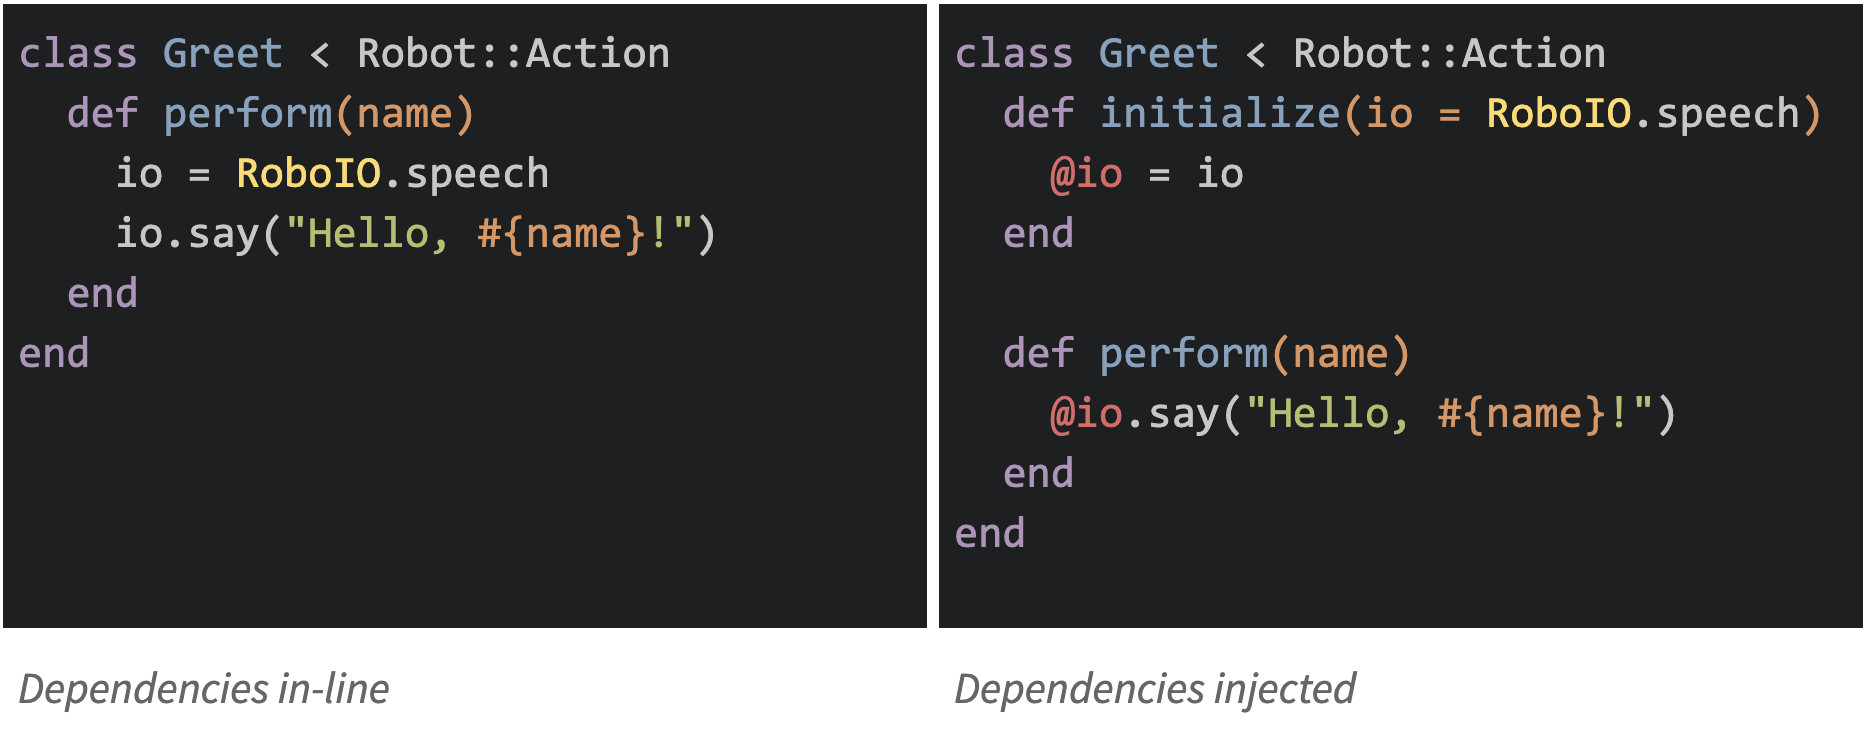 code with dependencies injected as parameters to the initializer, or not